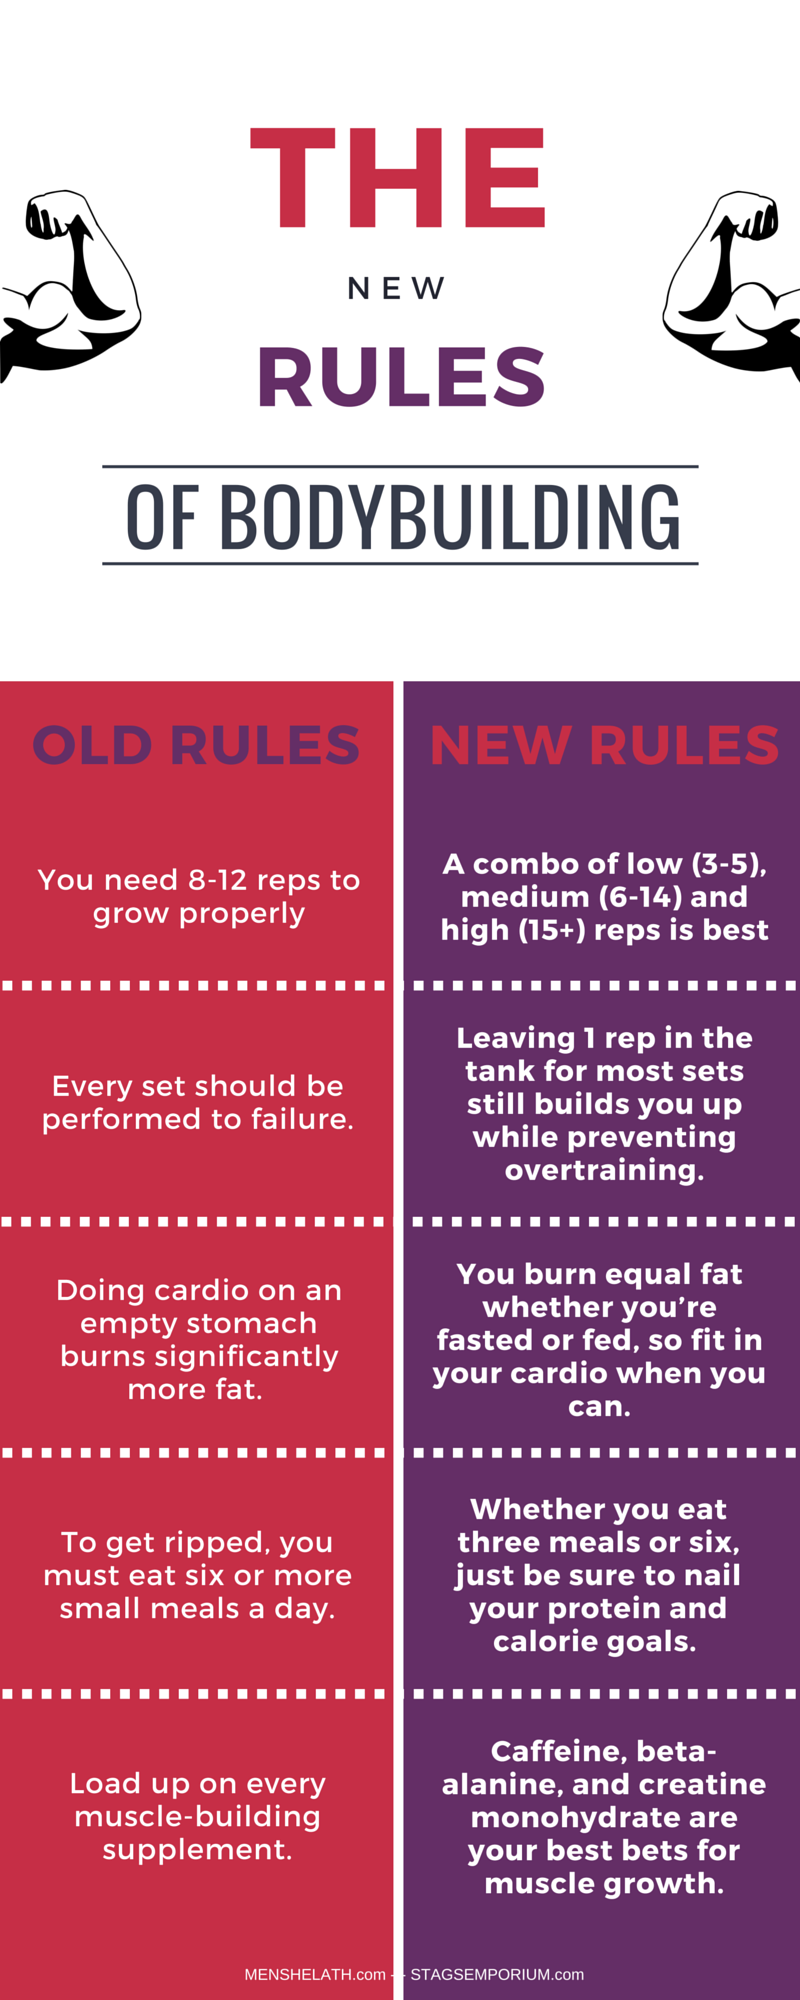 RULES OF BODYBUILDING